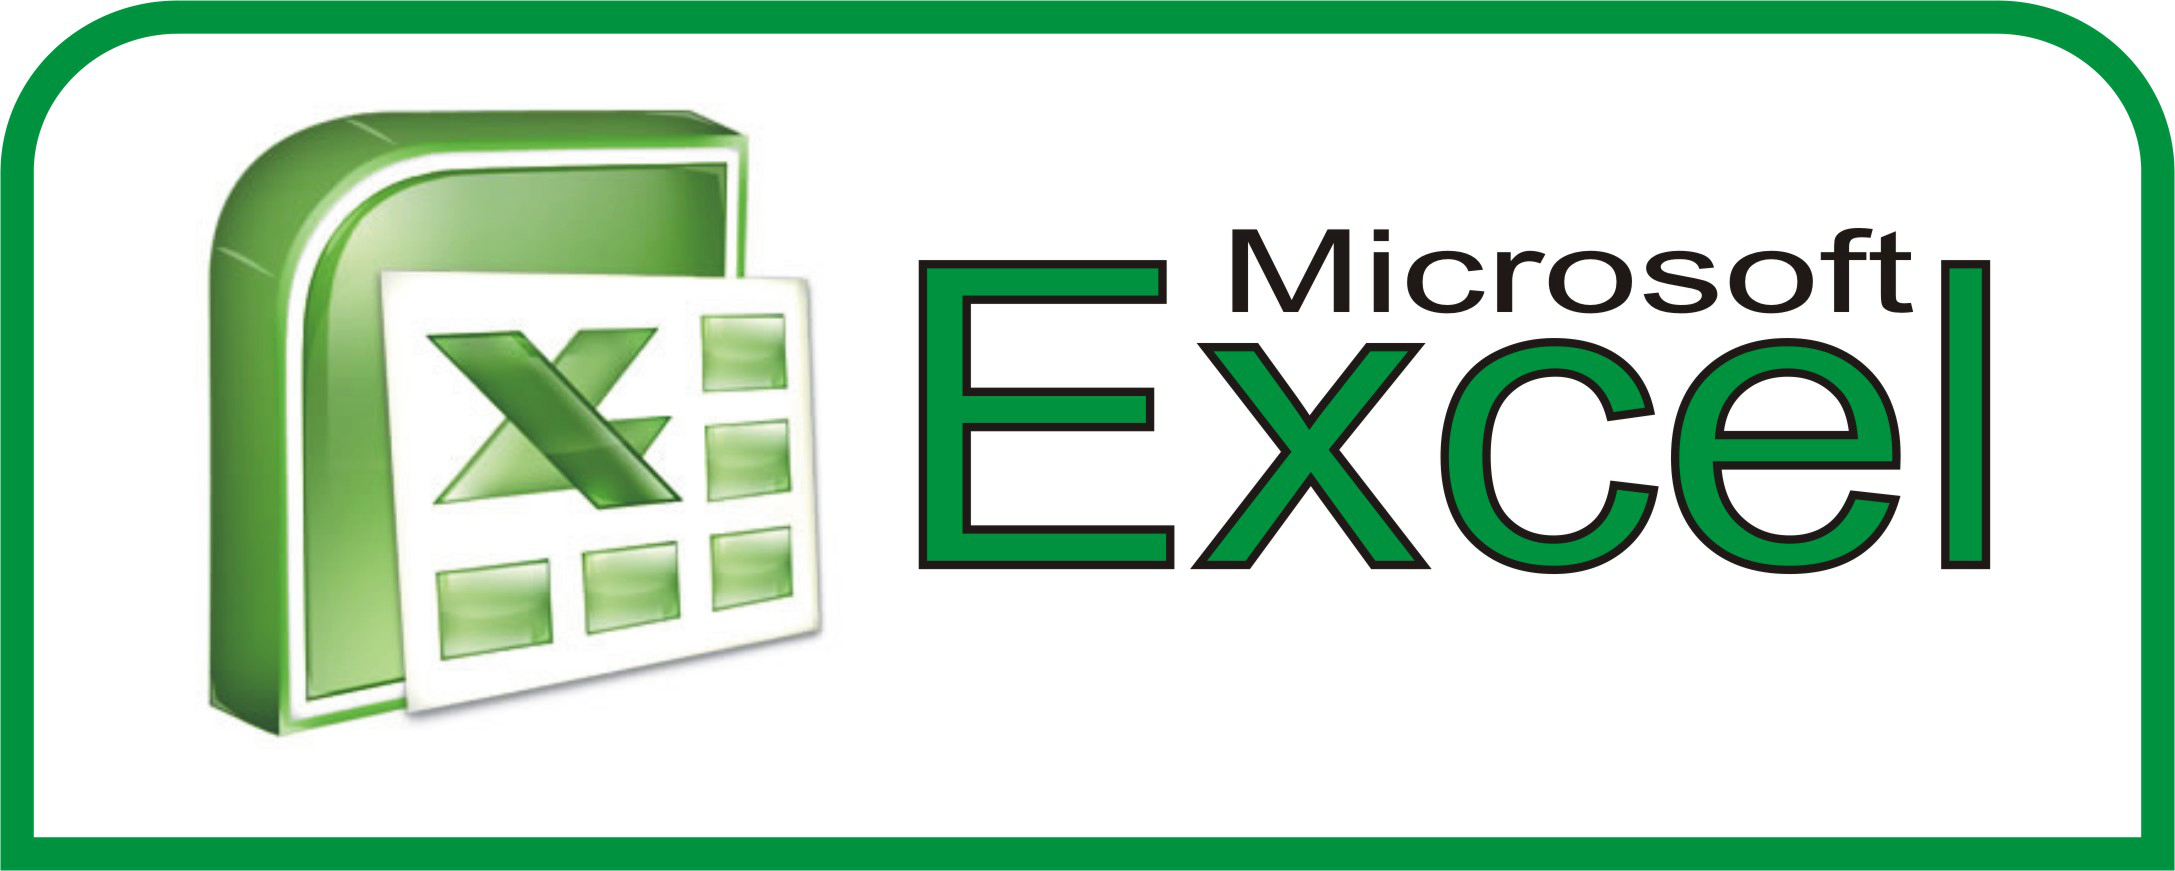 Ediblewildsus  Sweet  Excel Shortcuts You Probably Didnt Know About  Techdissected With Handsome Excel Column Besides Subtract Time In Excel Furthermore Add In Excel With Enchanting How To Link Tabs In Excel Also Excel Rv In Addition Excel Copy Formula Down And Excel Easy As Well As Excel Conditional Formatting Based On Another Cell Additionally How To Mail Merge Labels From Excel From Techdissectedcom With Ediblewildsus  Handsome  Excel Shortcuts You Probably Didnt Know About  Techdissected With Enchanting Excel Column Besides Subtract Time In Excel Furthermore Add In Excel And Sweet How To Link Tabs In Excel Also Excel Rv In Addition Excel Copy Formula Down From Techdissectedcom